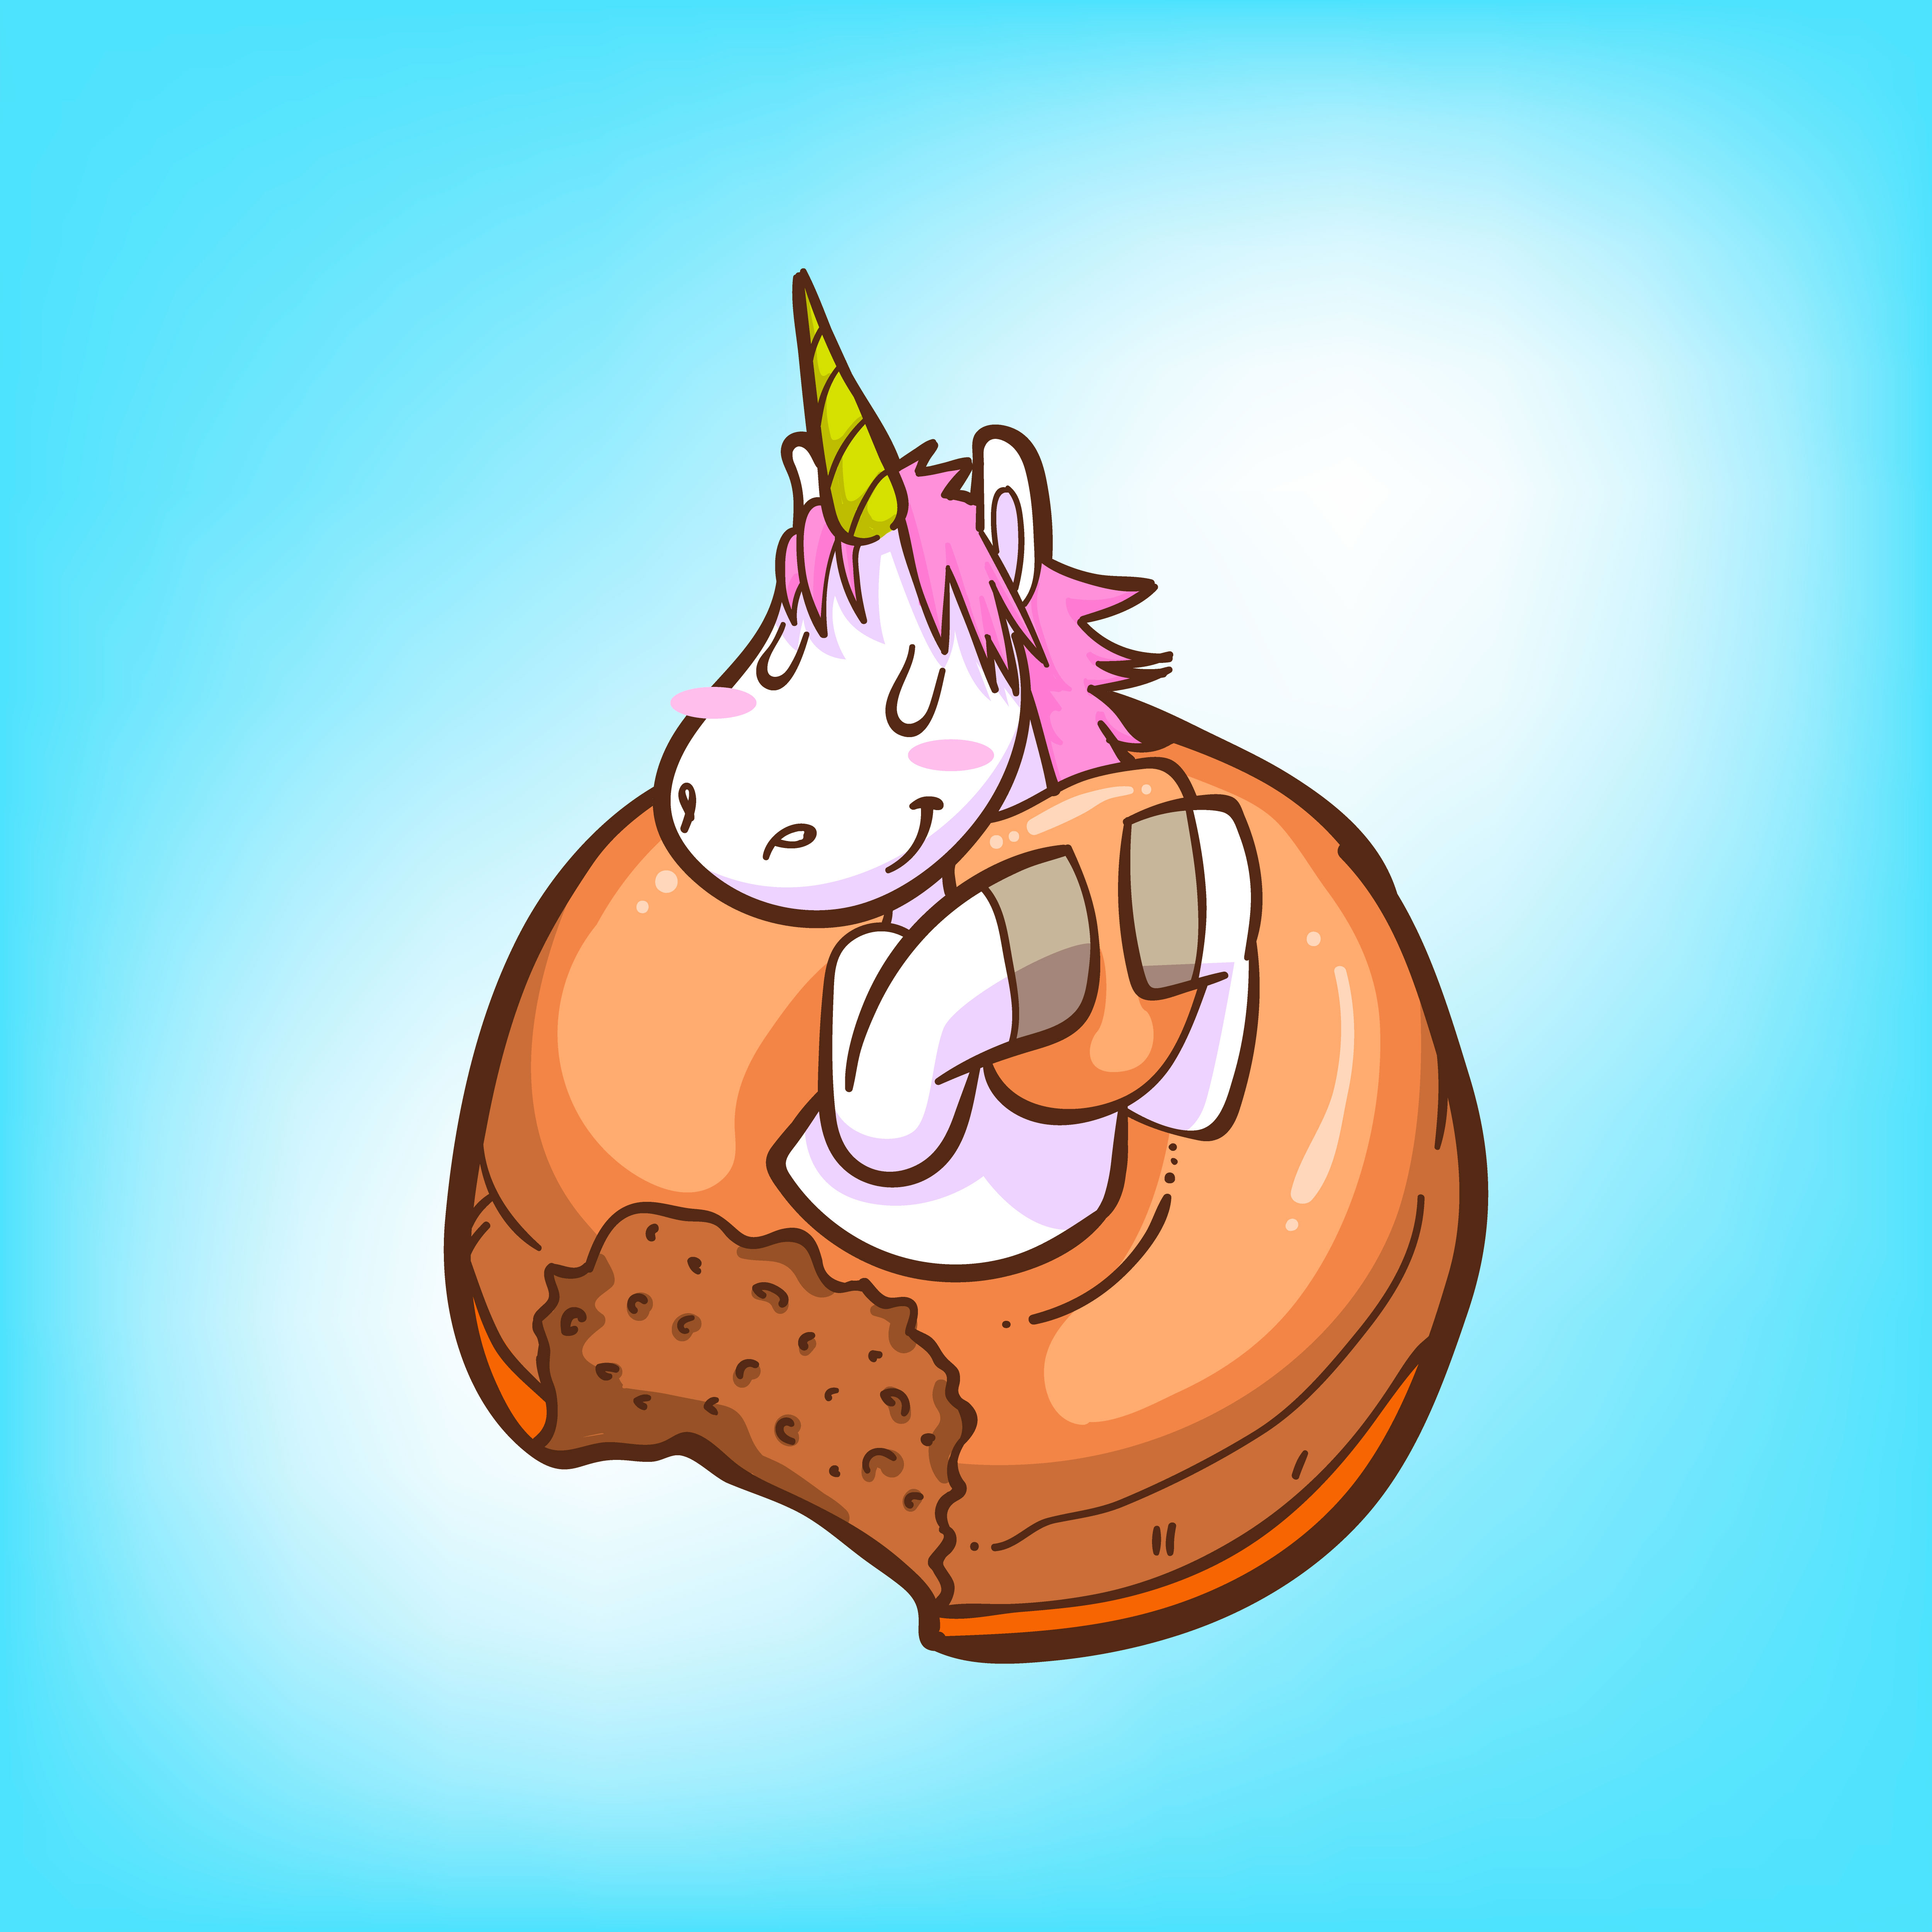 cute unicorn and donuts  download free vectors clipart